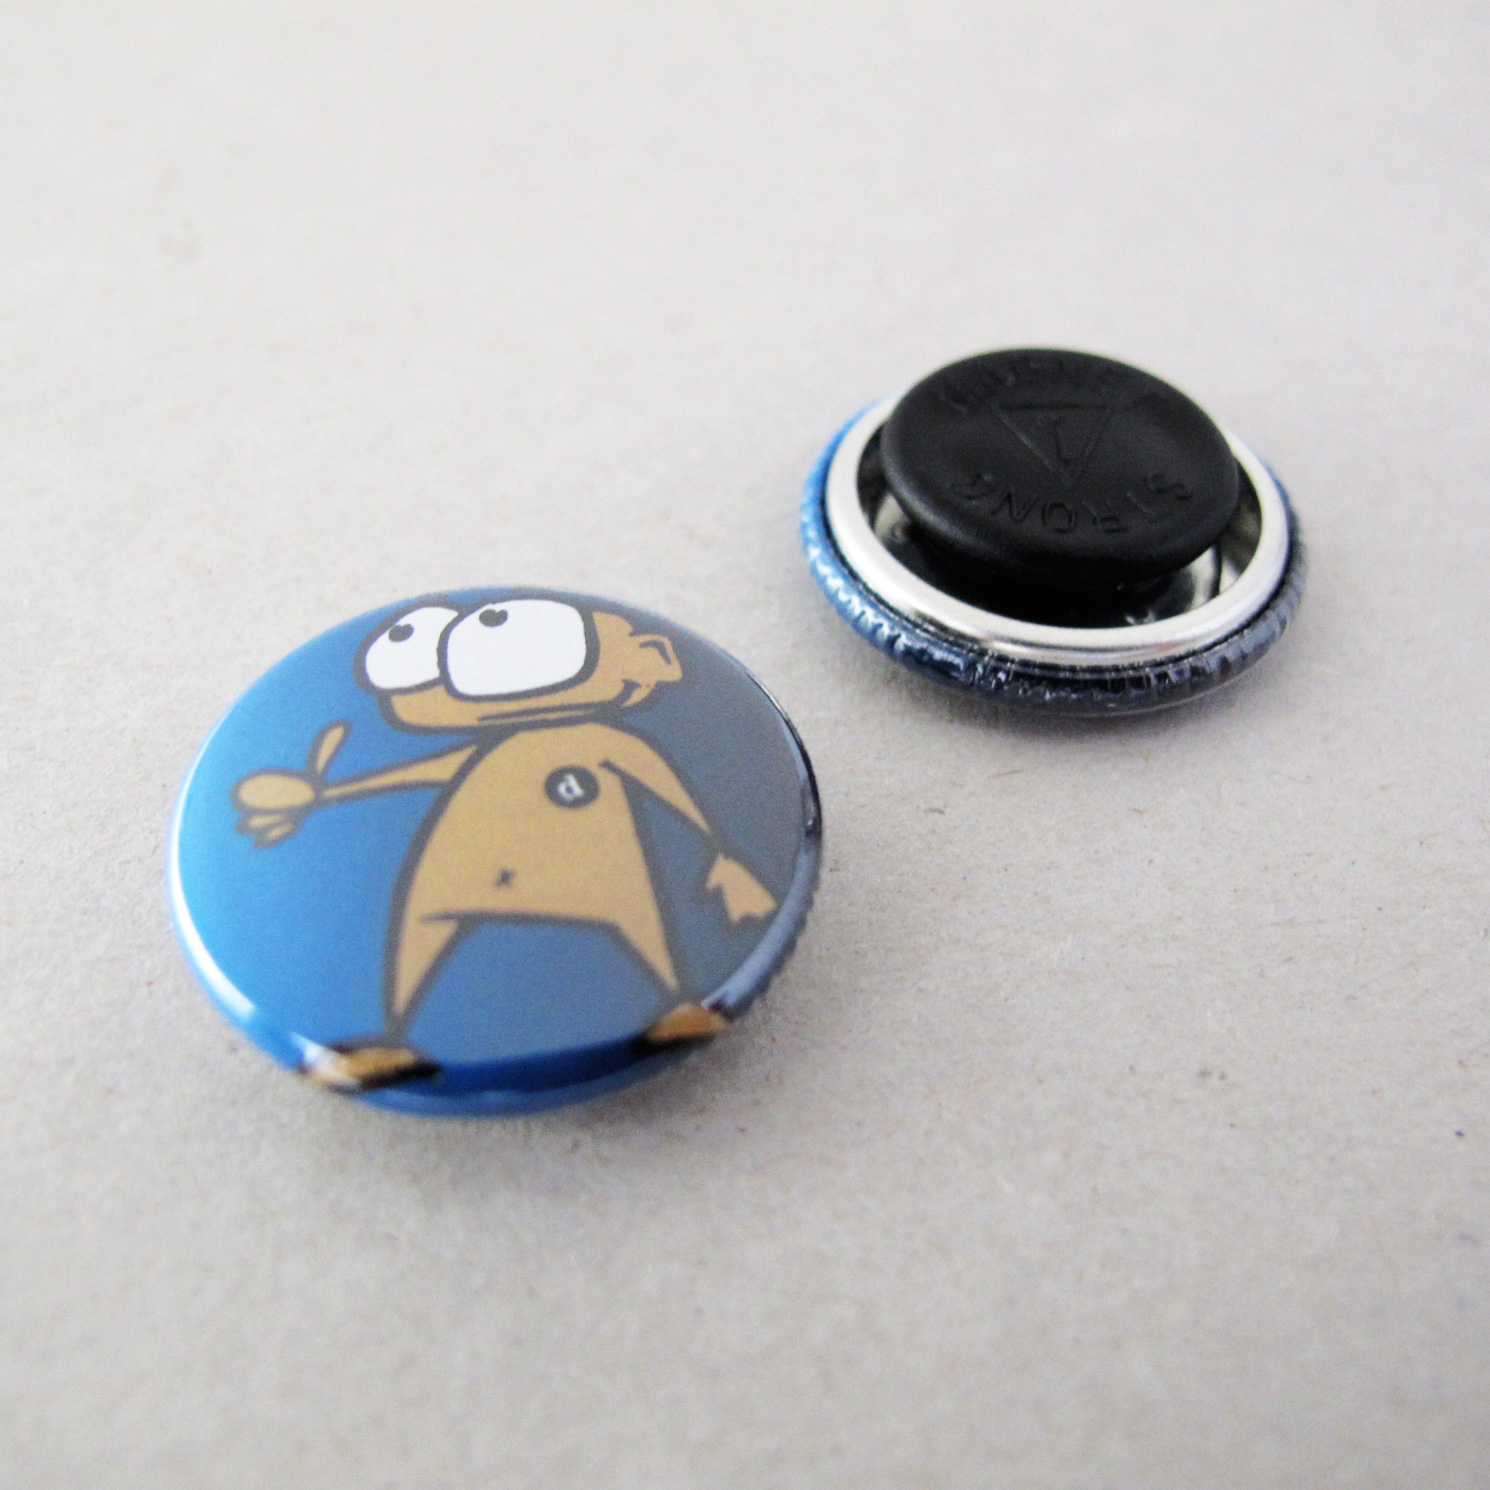 25mm Button Clothing Magnet